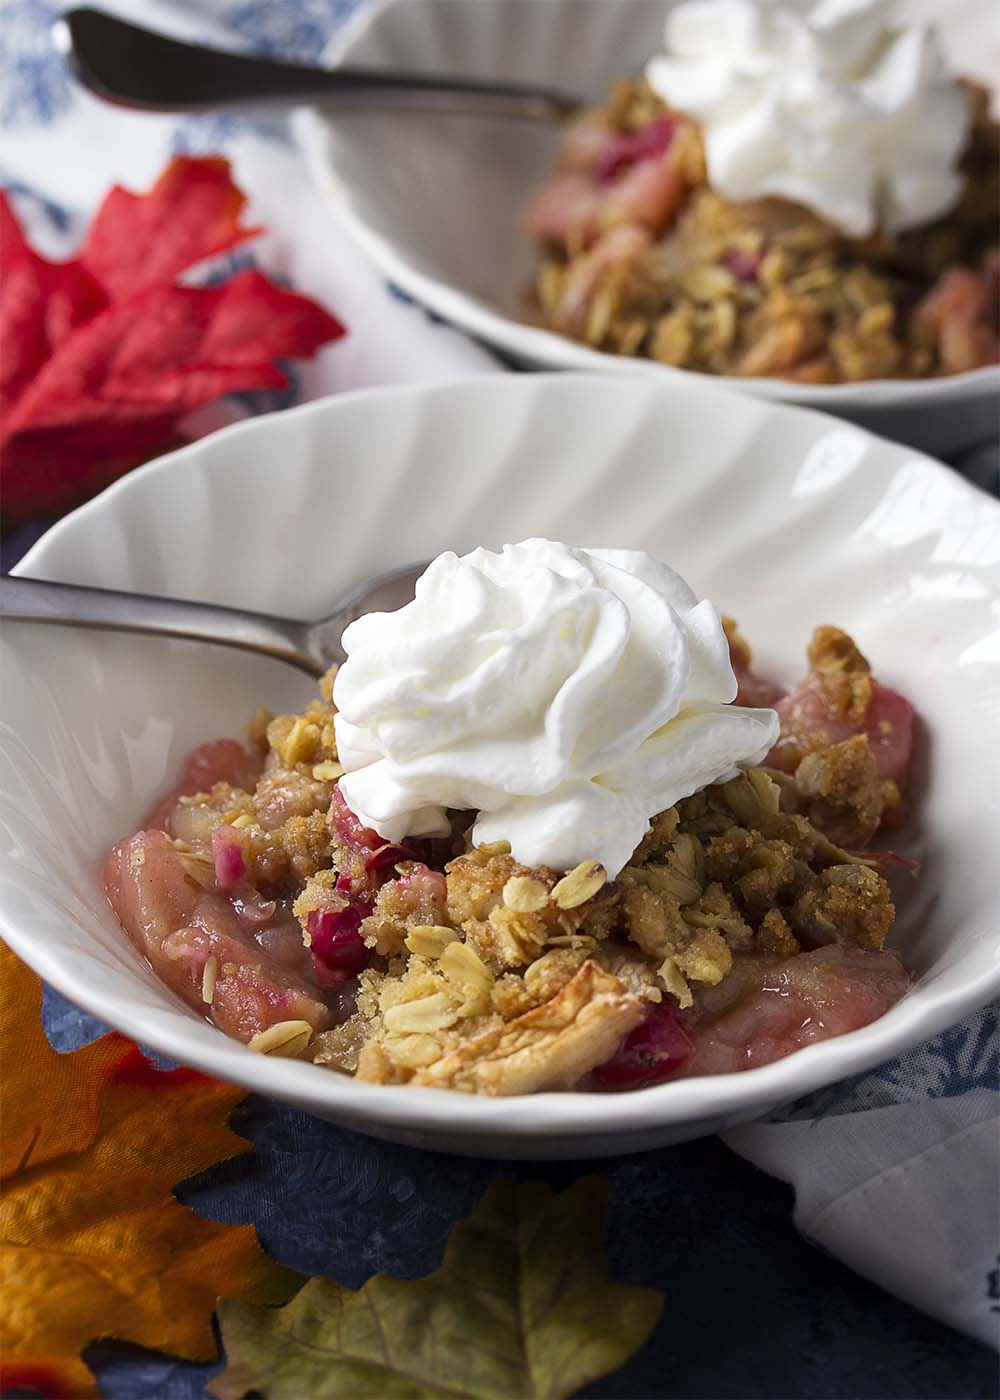 Bowls of warm apple cranberry crisp all topped with whipped cream, spoons in the bowls all ready to eat.